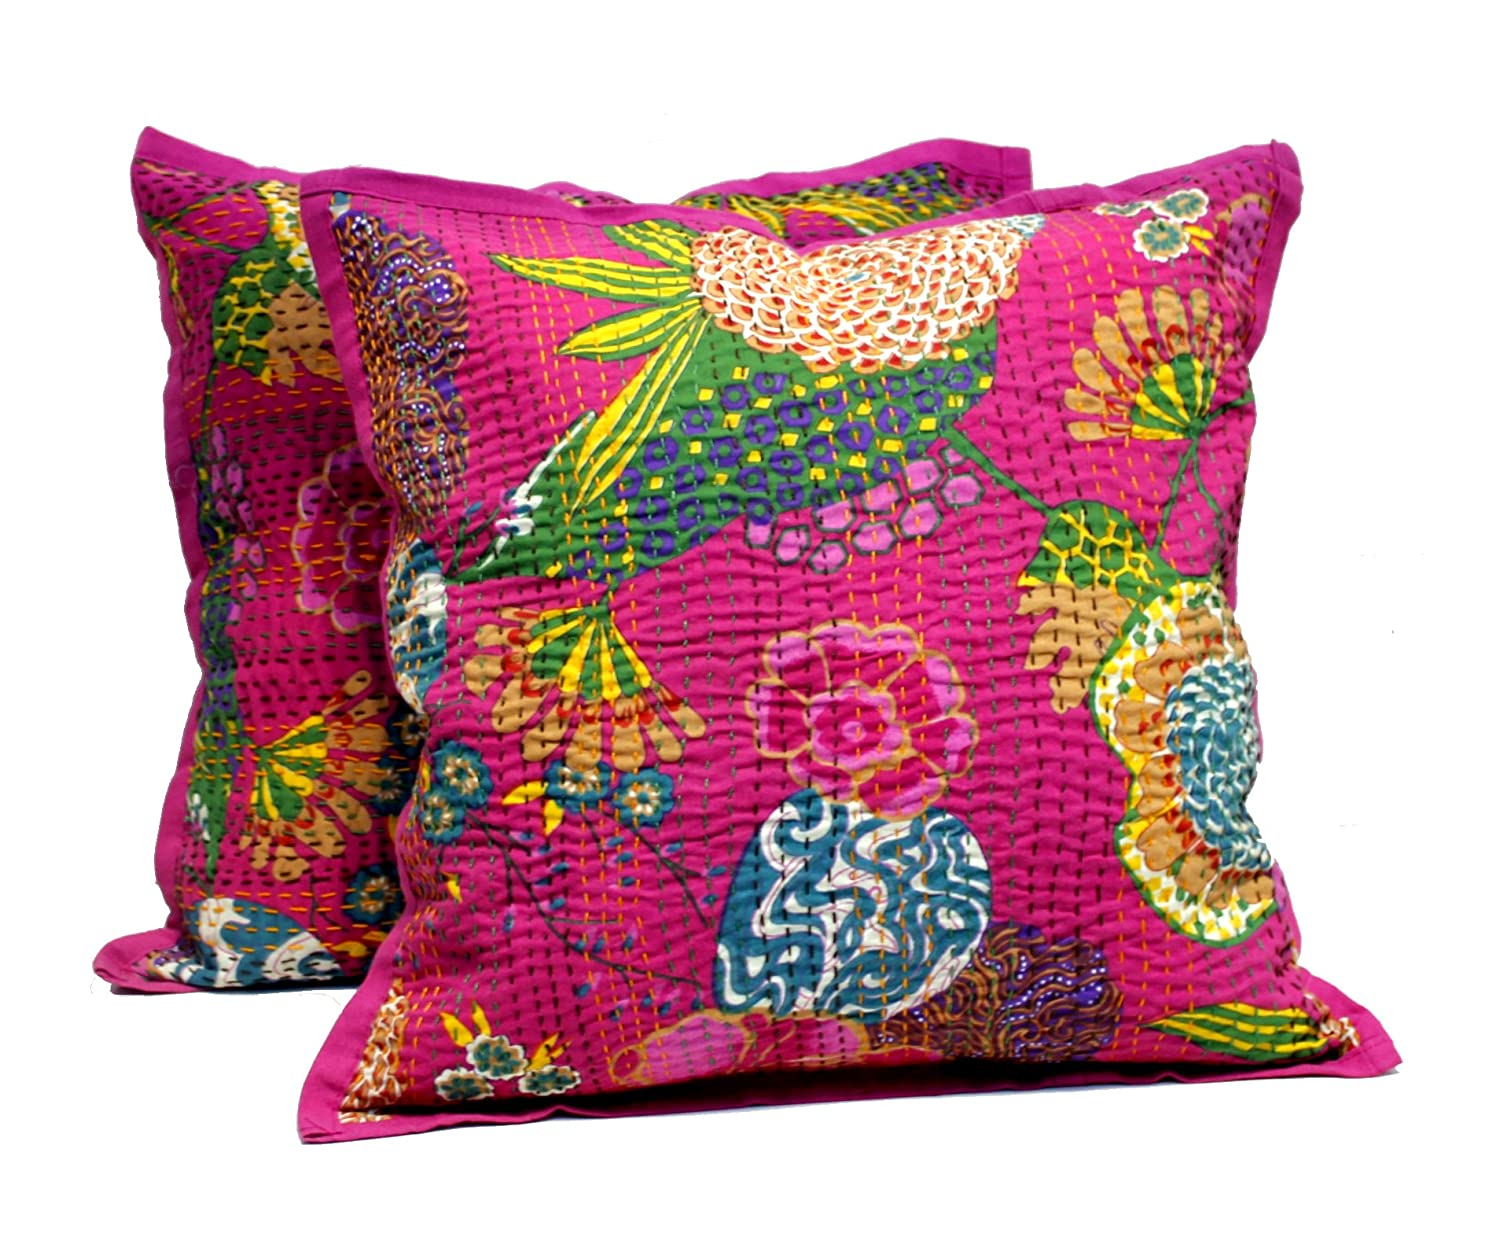 cushion coversfor mother's day